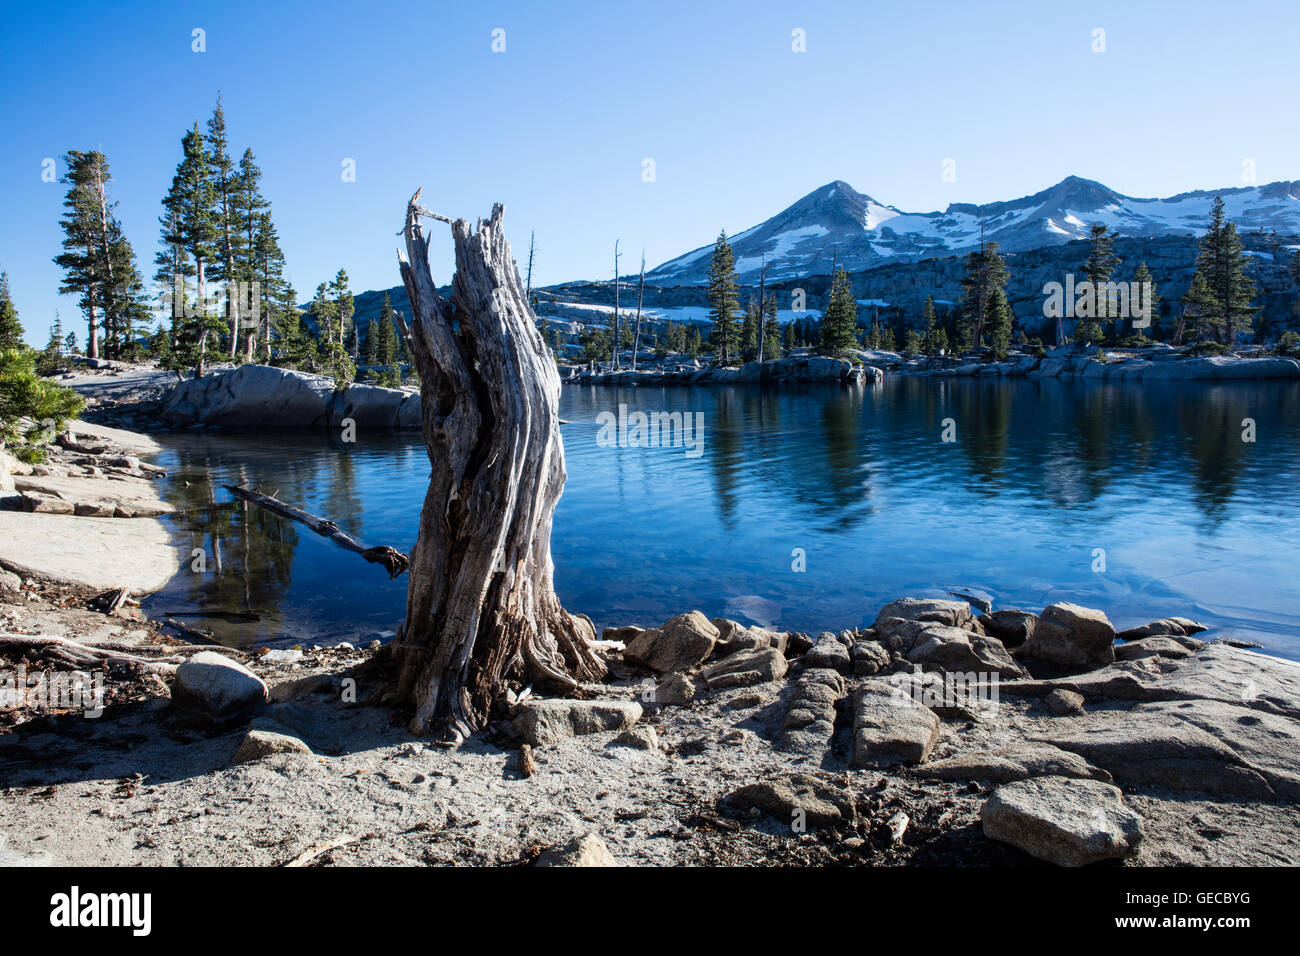 A gnarled tree stump stands on the edge of a mountain lake in the Desolation Wilderness of eastern California. - Stock Image